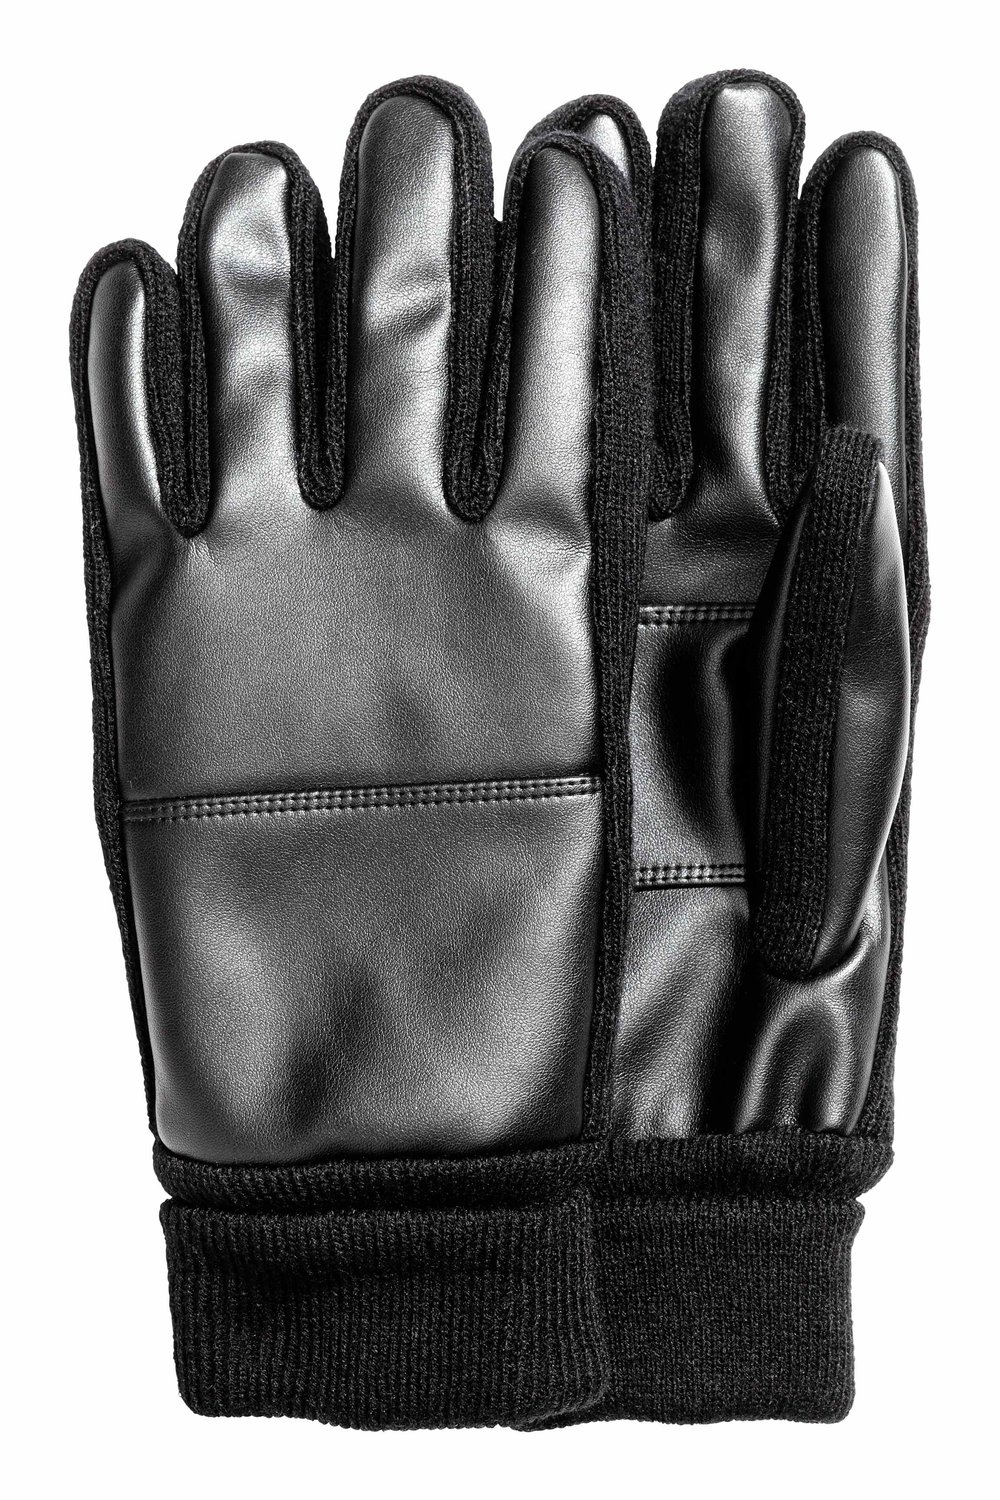 Gloves, £9.99 (hm.com)